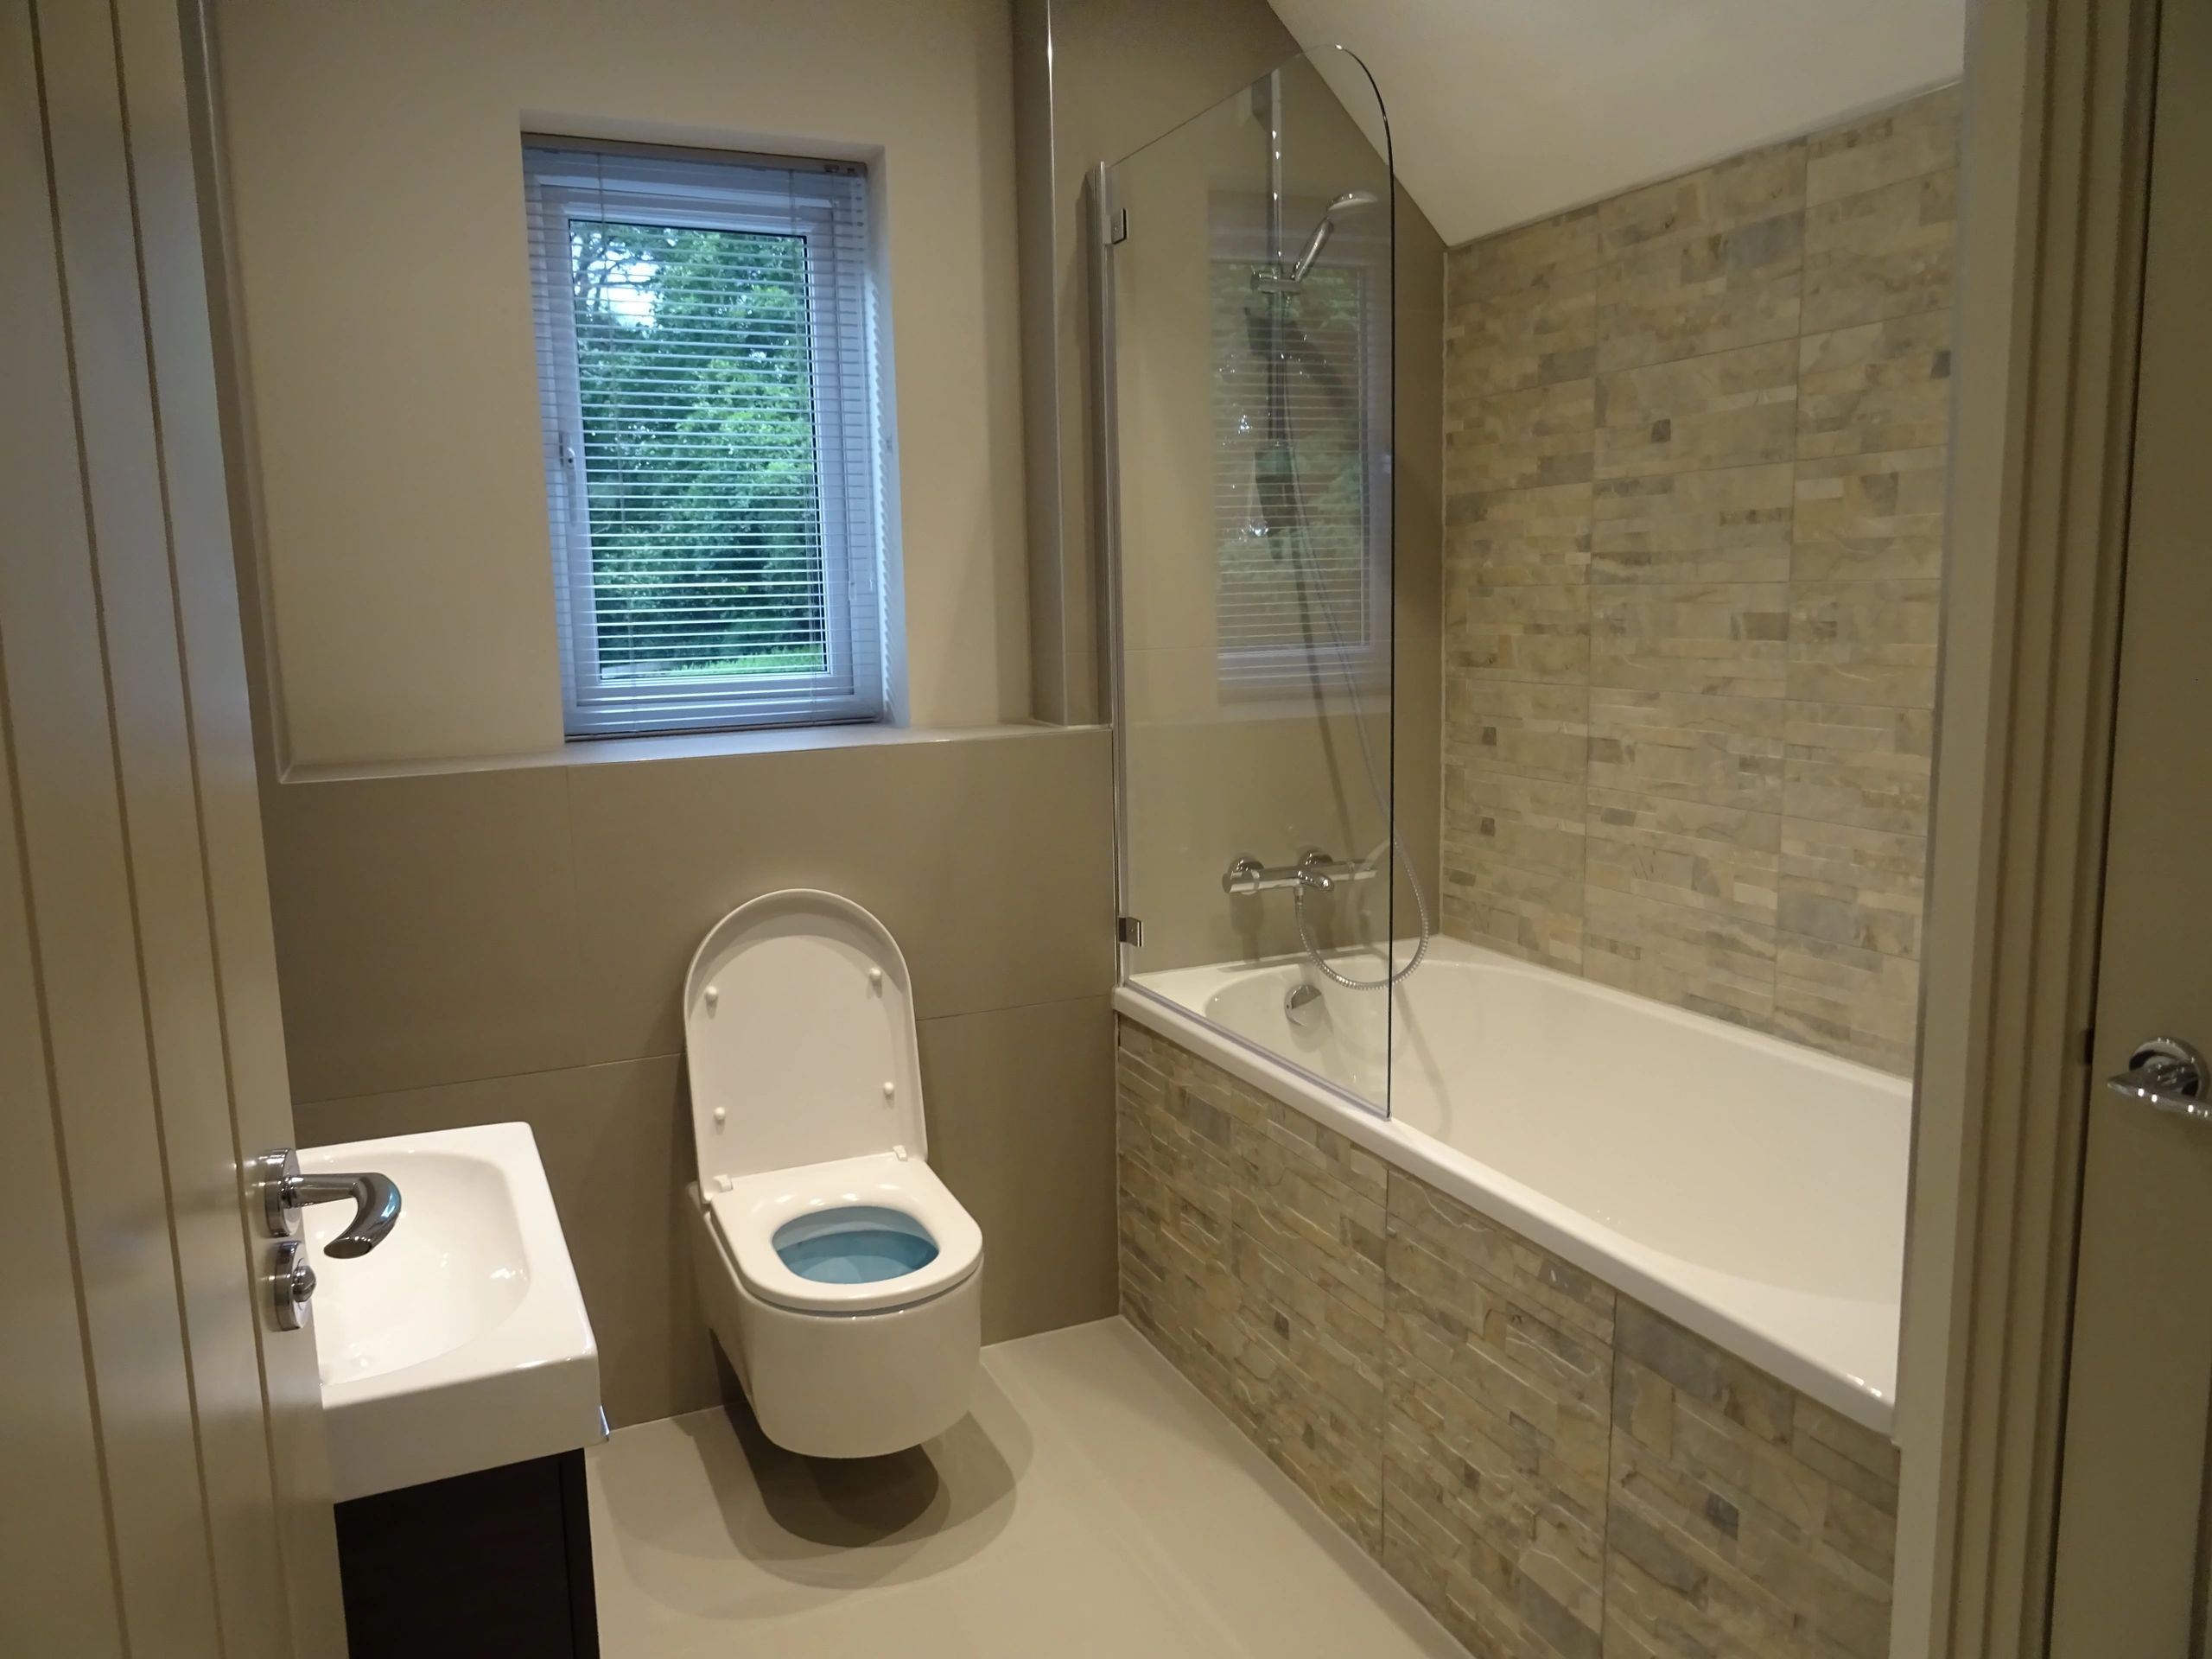 Bathroom is clean and ready for it's end of tenancy cleaning inspection